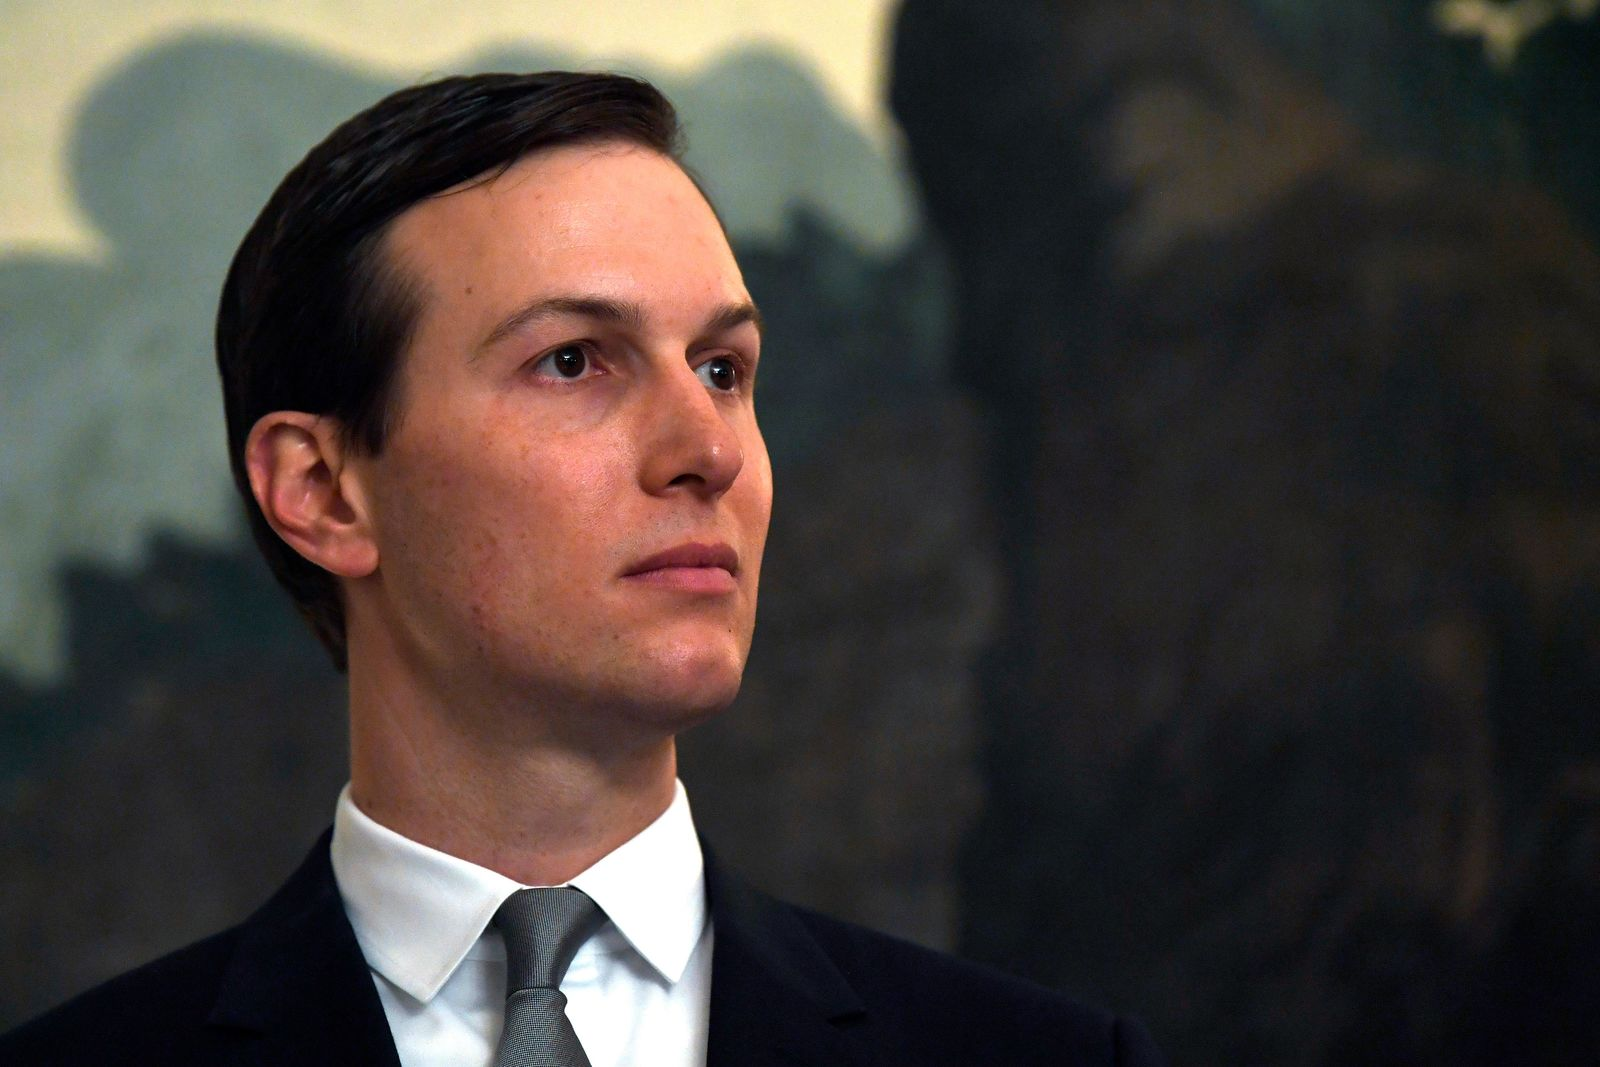 FILE - In this March 25, 2019, file photo White House adviser Jared Kushner listens during a proclamation signing with President Donald Trump and Israeli Prime Minister Benjamin Netanyahu in the Diplomatic Reception Room at the White House in Washington. Kushner will present the economic portion of his Mideast peace plan on June 25 in Bahrain, with some key players missing. (AP Photo/Susan Walsh, File)